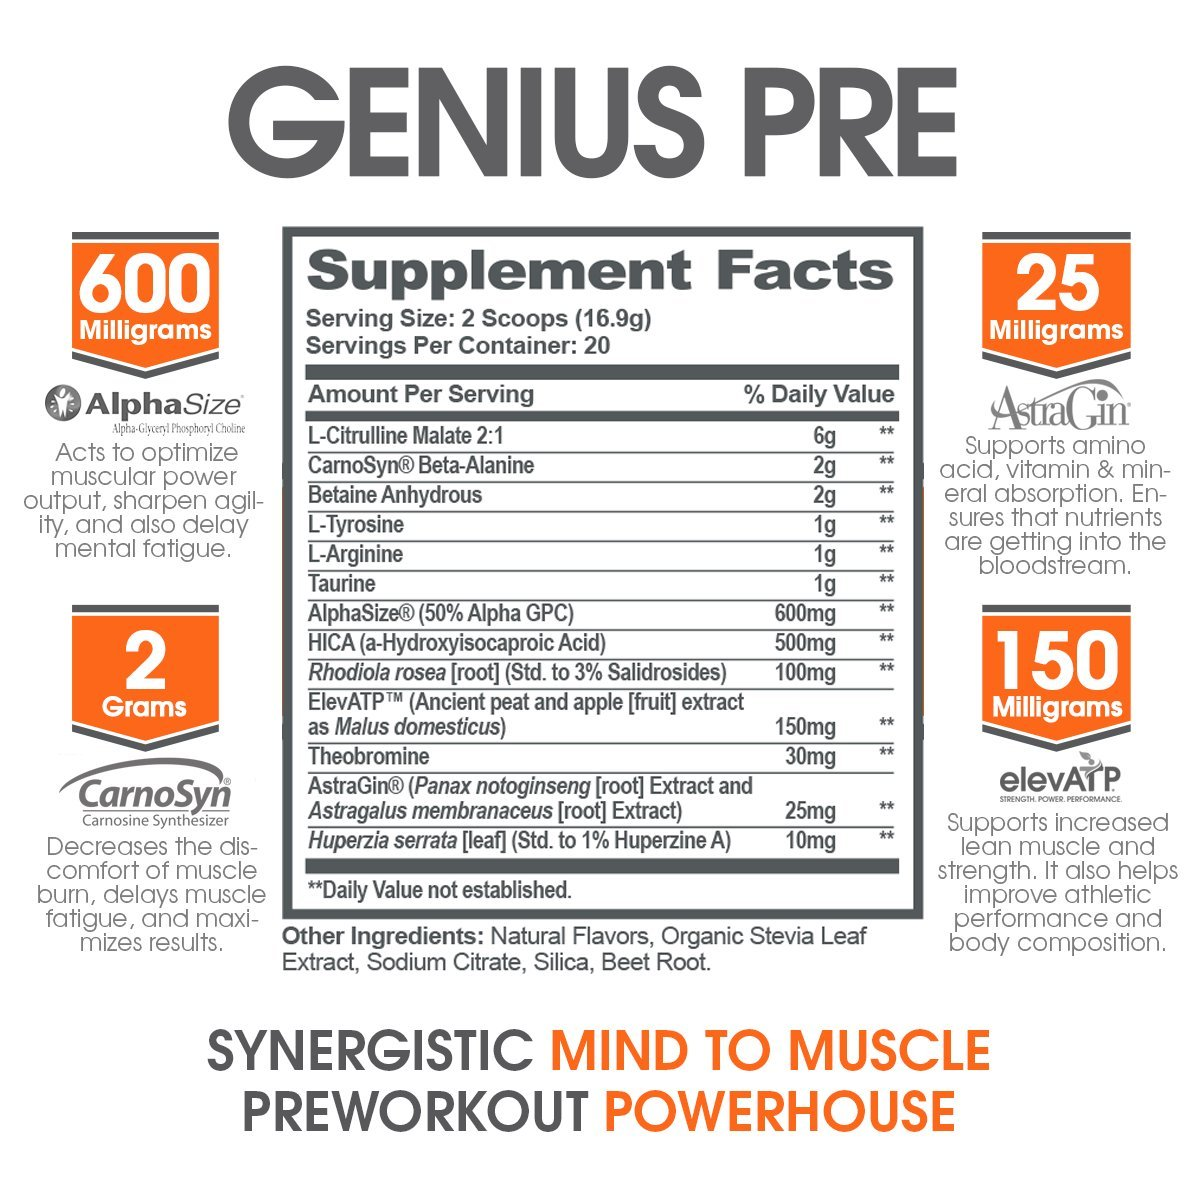 Amazoncom Genius Pre Workout All Natural Nootropic Preworkout - 20 genius solutions people came everyday problems